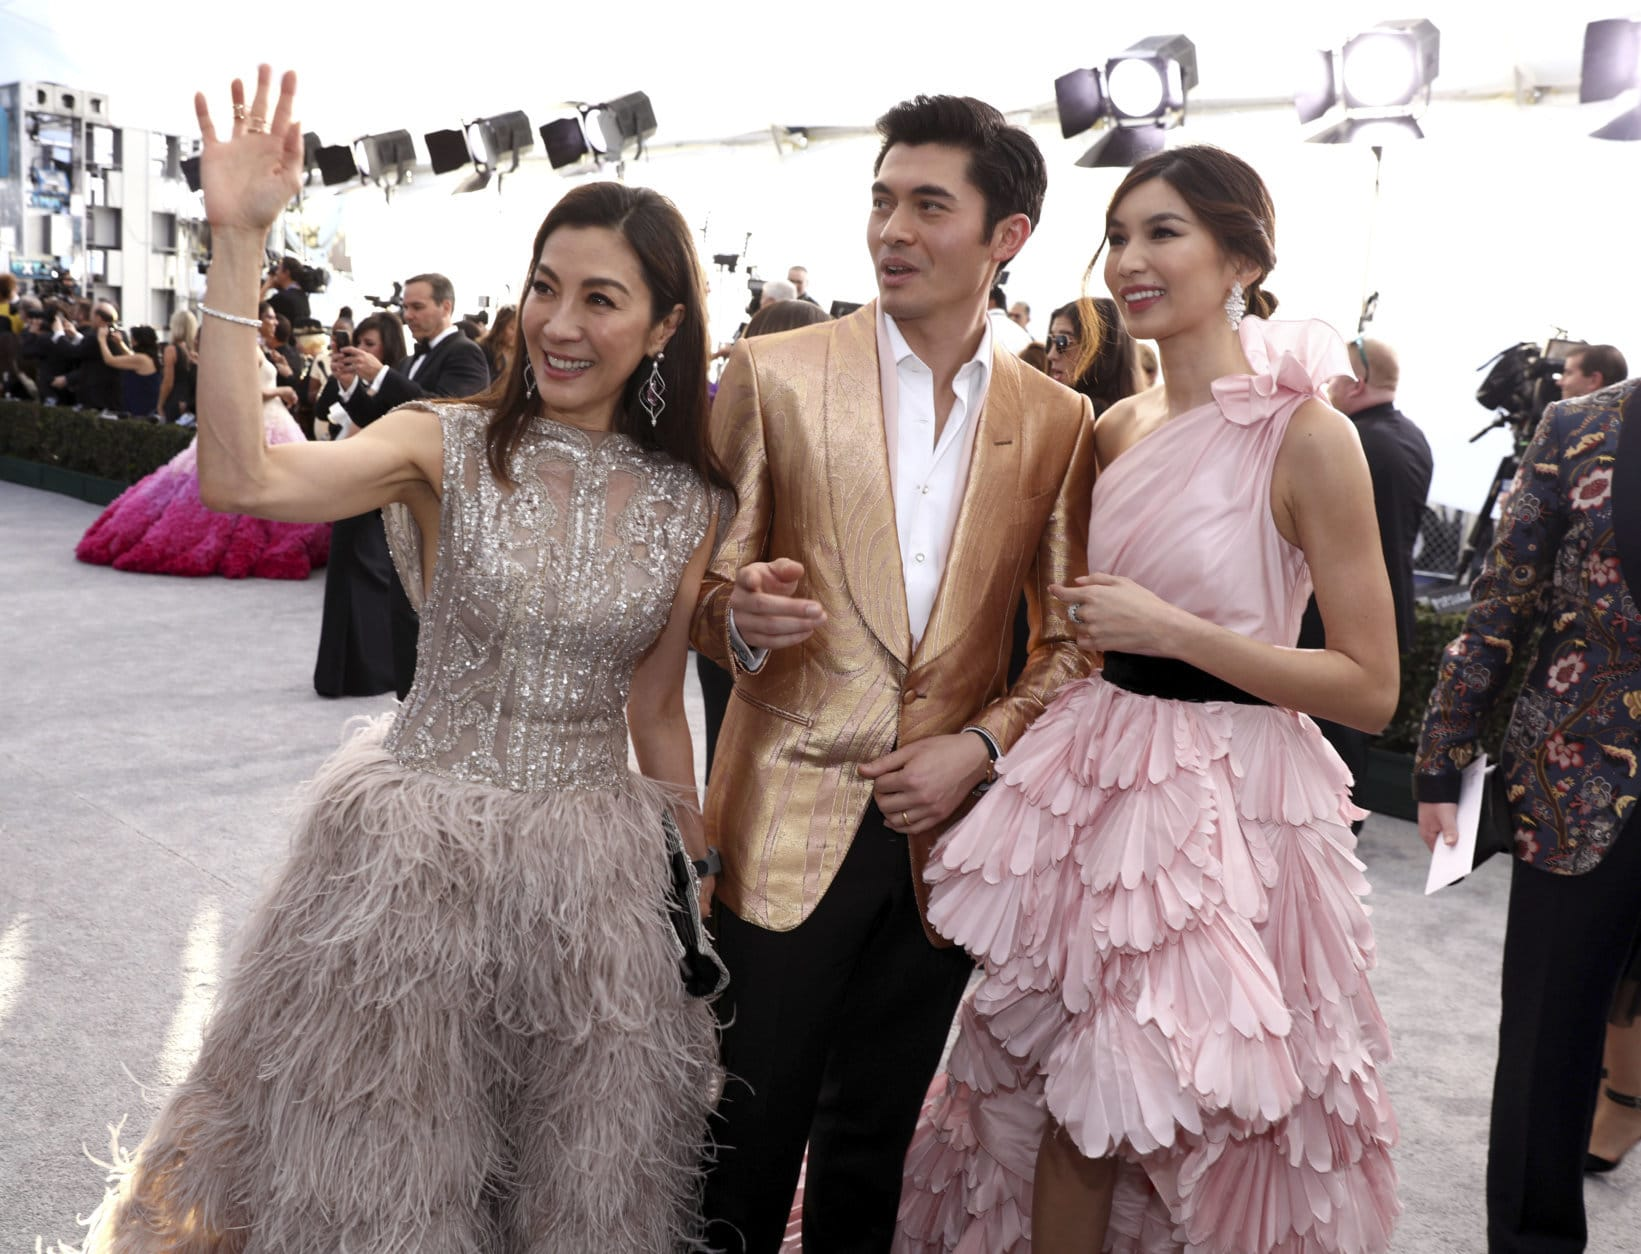 Michelle Yeoh, from left, Henry Golding and Gemma Chan arrive at the 25th annual Screen Actors Guild Awards at the Shrine Auditorium & Expo Hall on Sunday, Jan. 27, 2019, in Los Angeles. (Photo by Matt Sayles/Invision/AP)